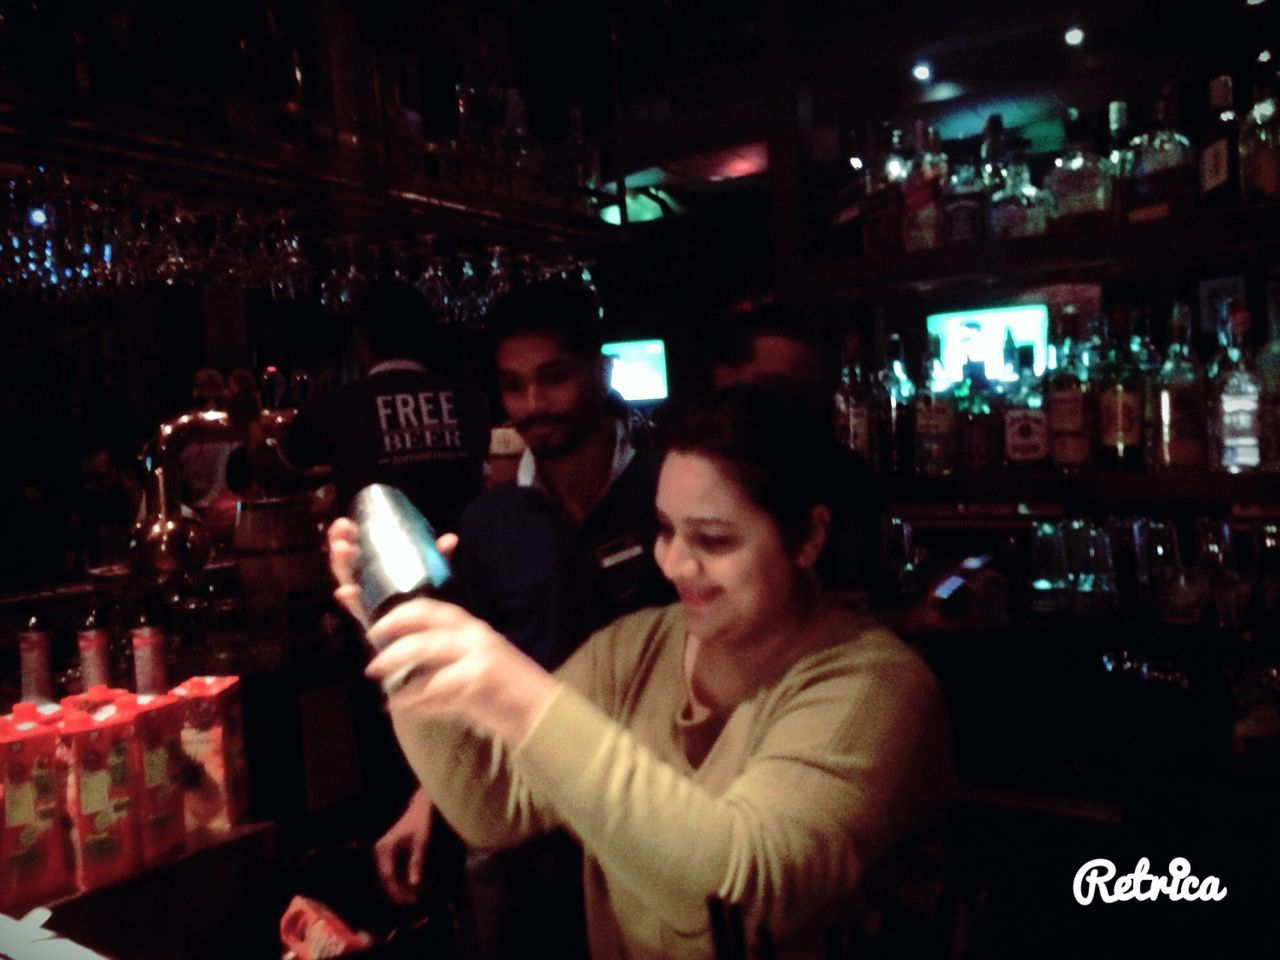 night, alcohol, nightlife, bottle, illuminated, bar counter, two people, bar - drink establishment, drink, nightclub, men, togetherness, indoors, bartender, happiness, happy hour, friendship, smiling, real people, city, young adult, people